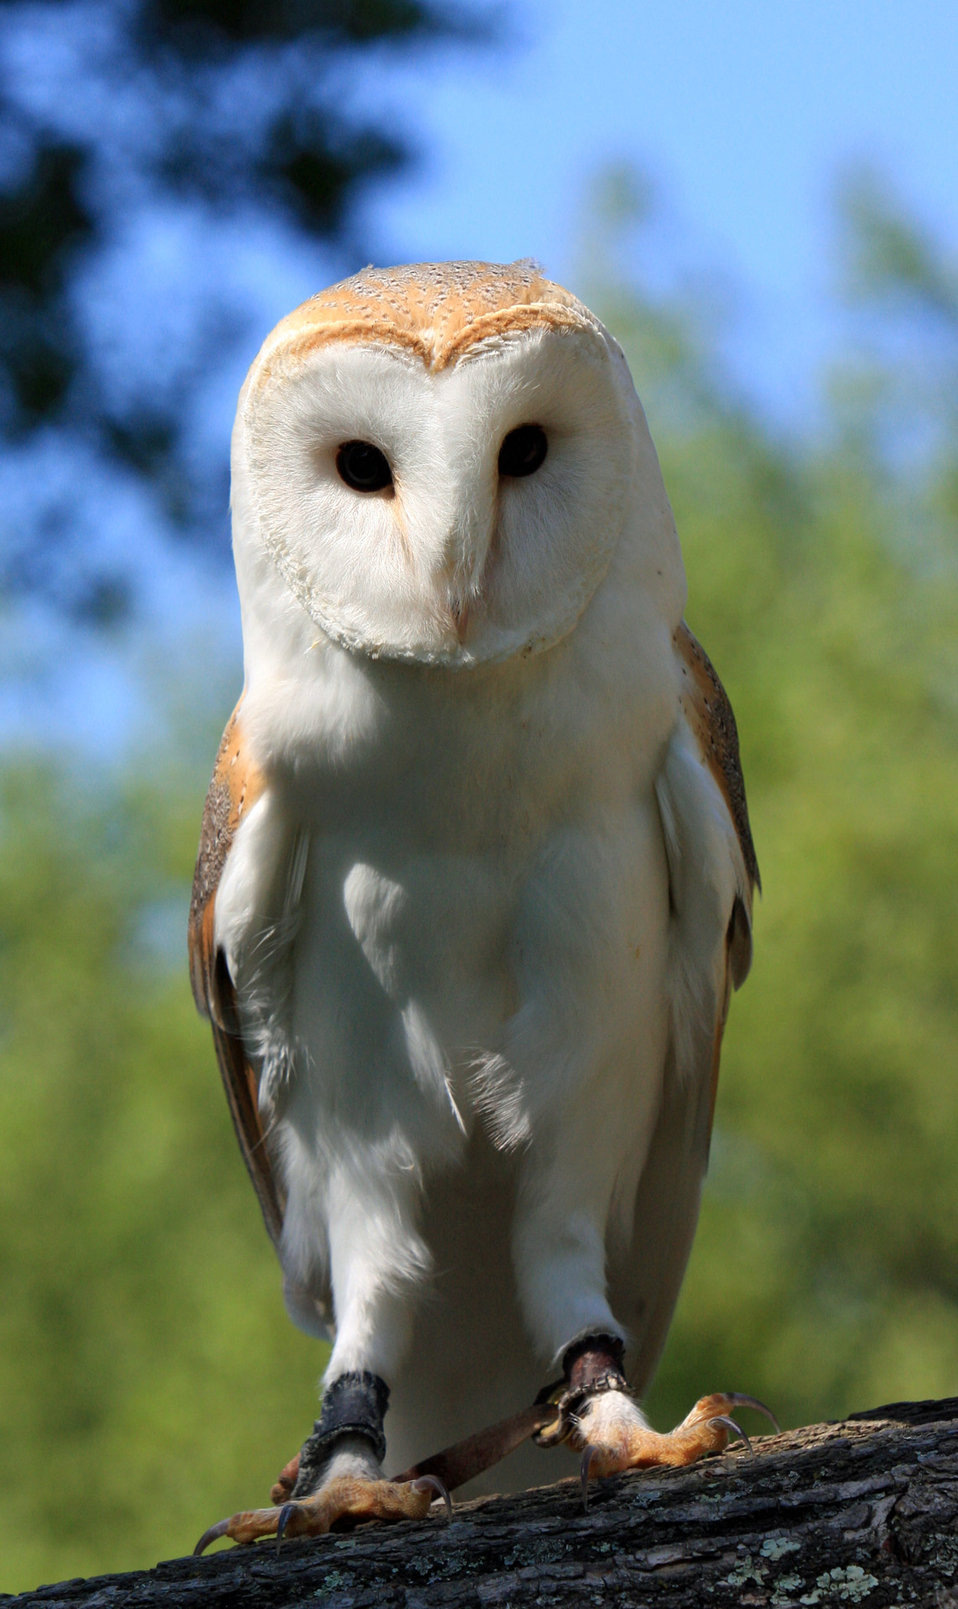 Barn owl portrait close-up